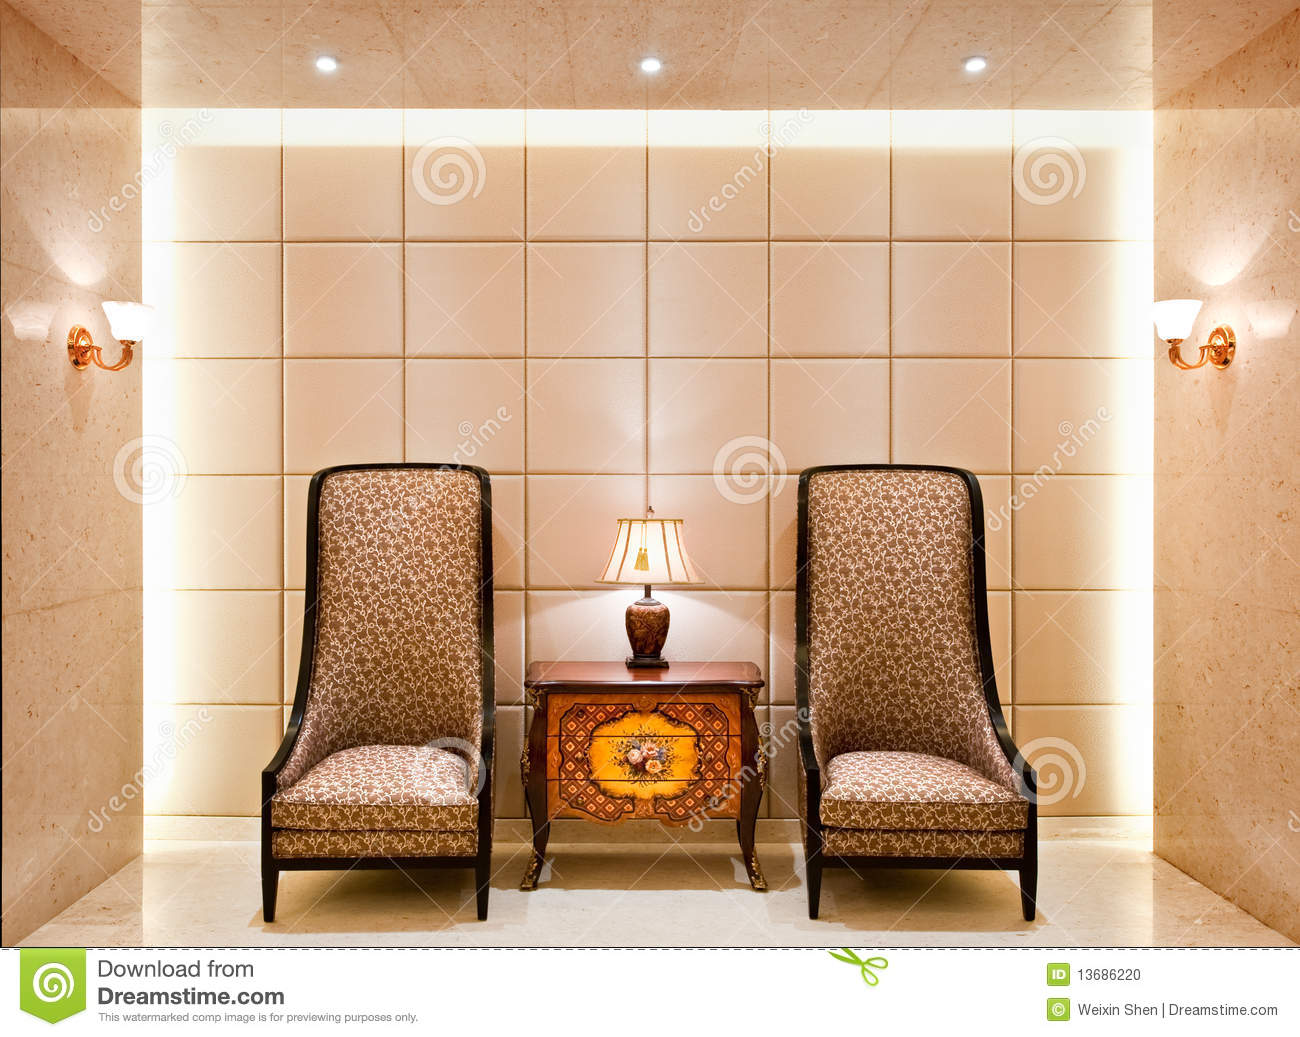 Old Fashioned Chairs And Side Table Stock Photo Image Of Wall - Old fashioned side table